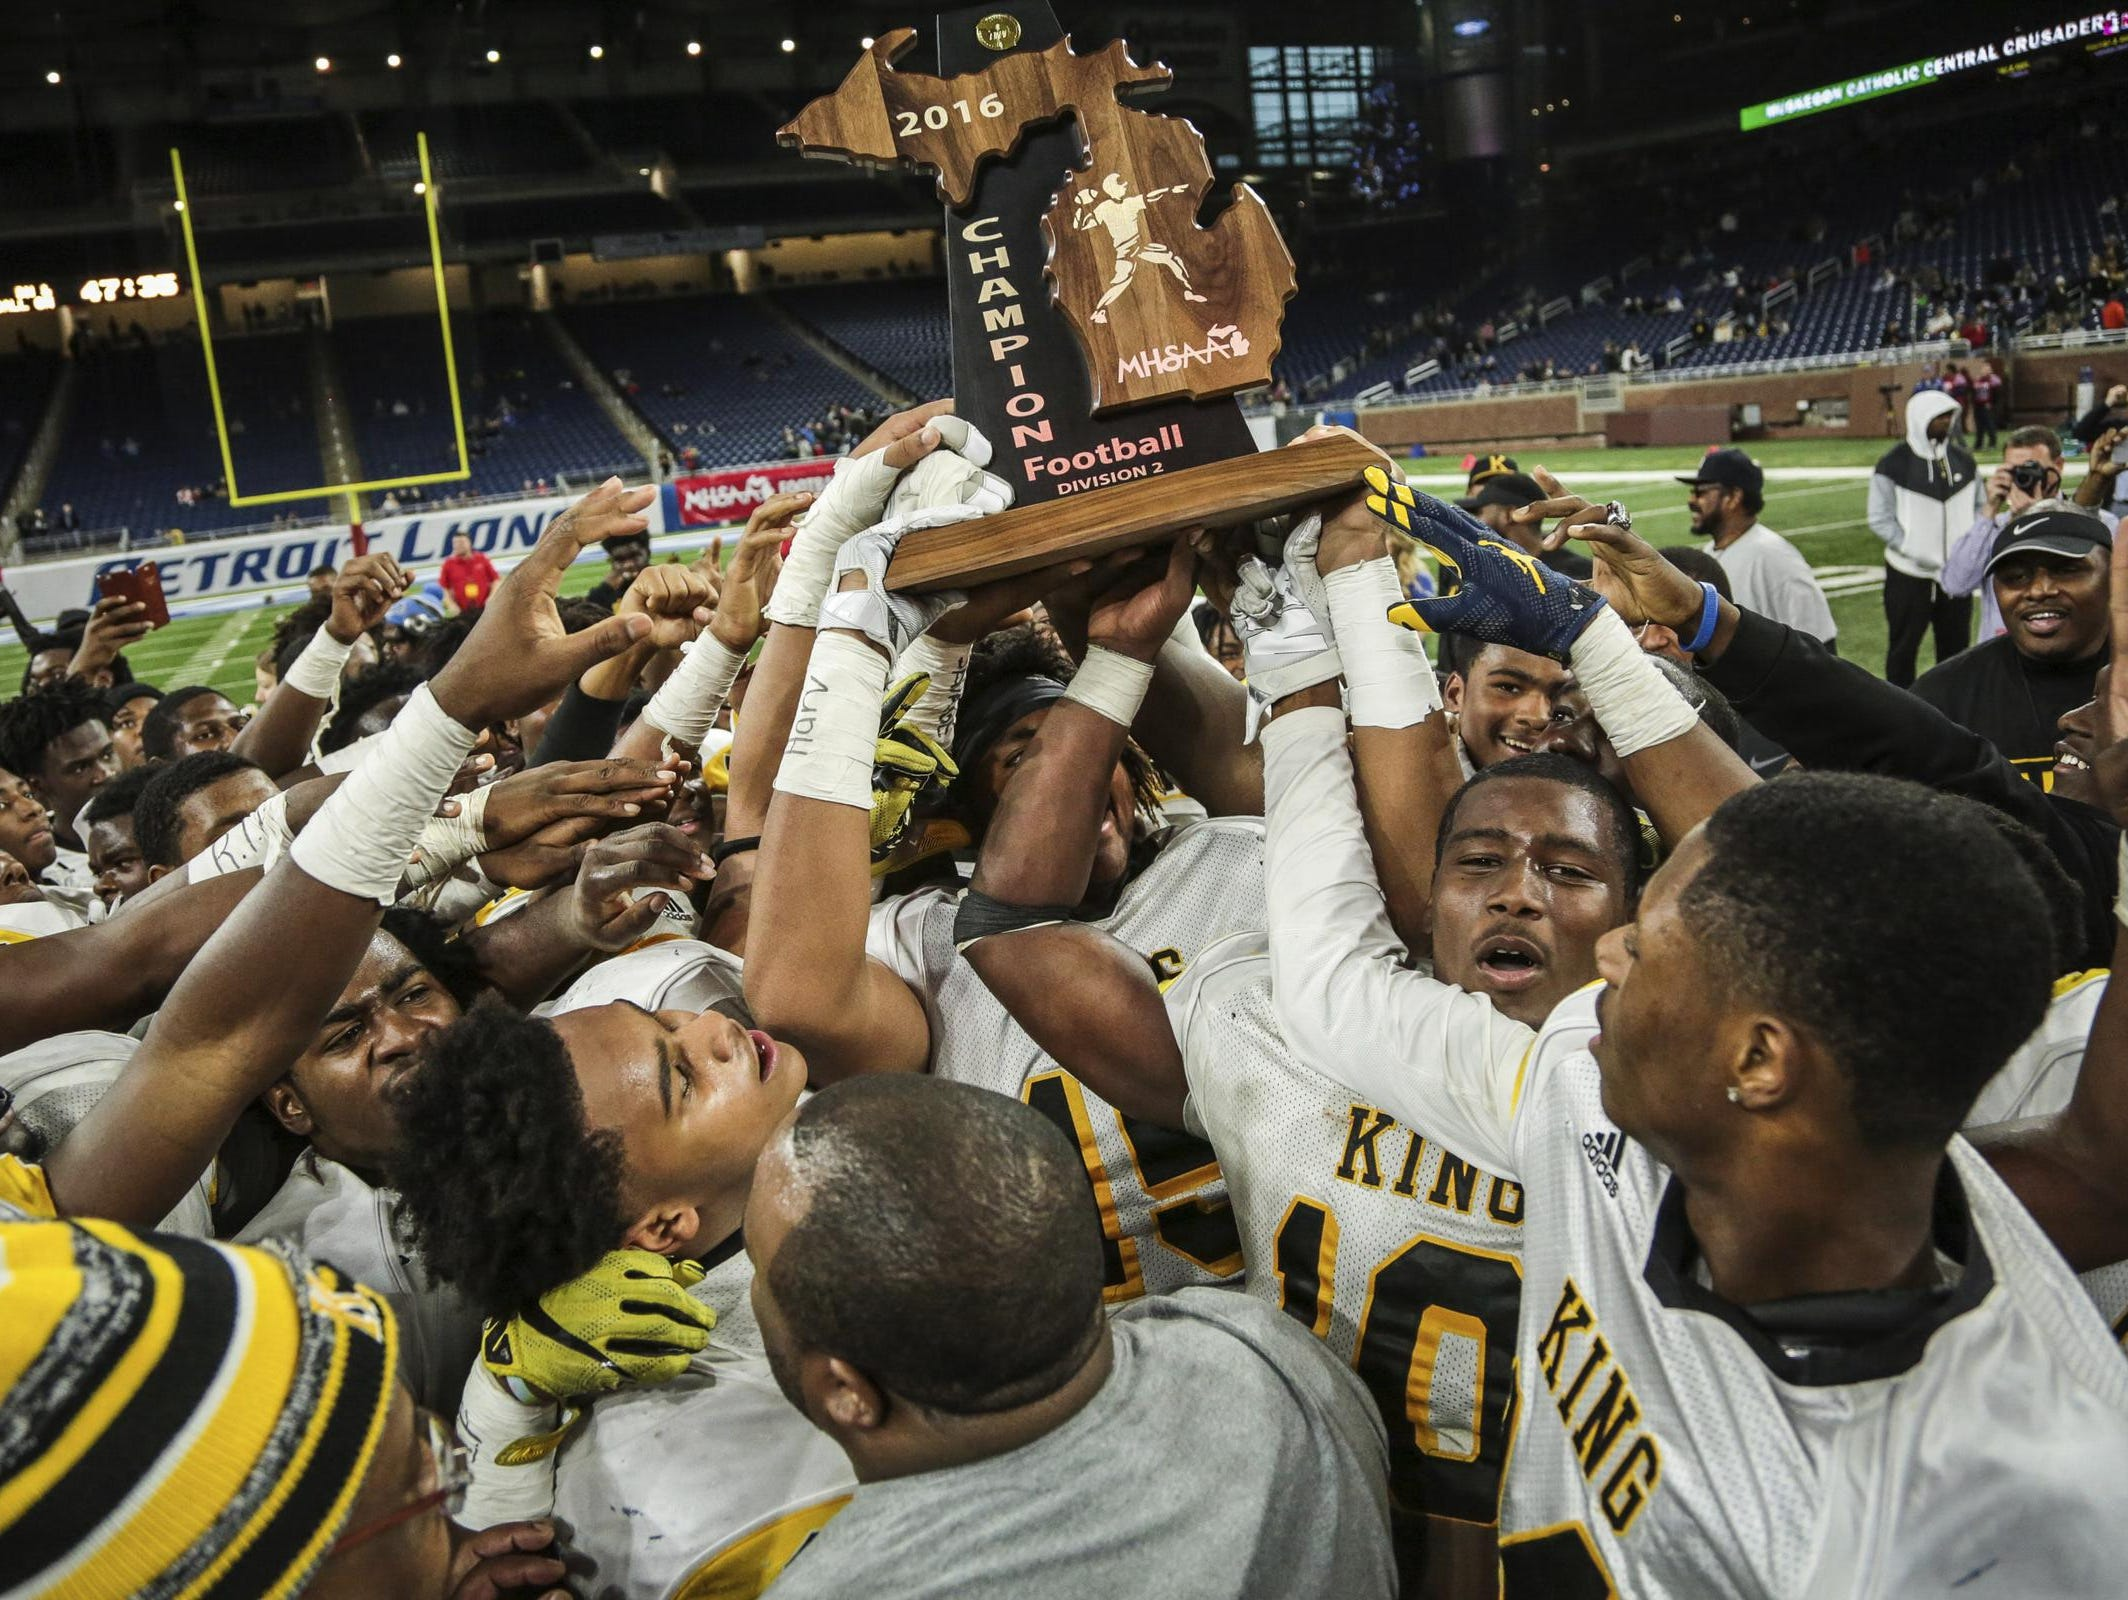 Detroit King players celebrate winning the title against Walled Lake Western during the Division 2 title game Friday.